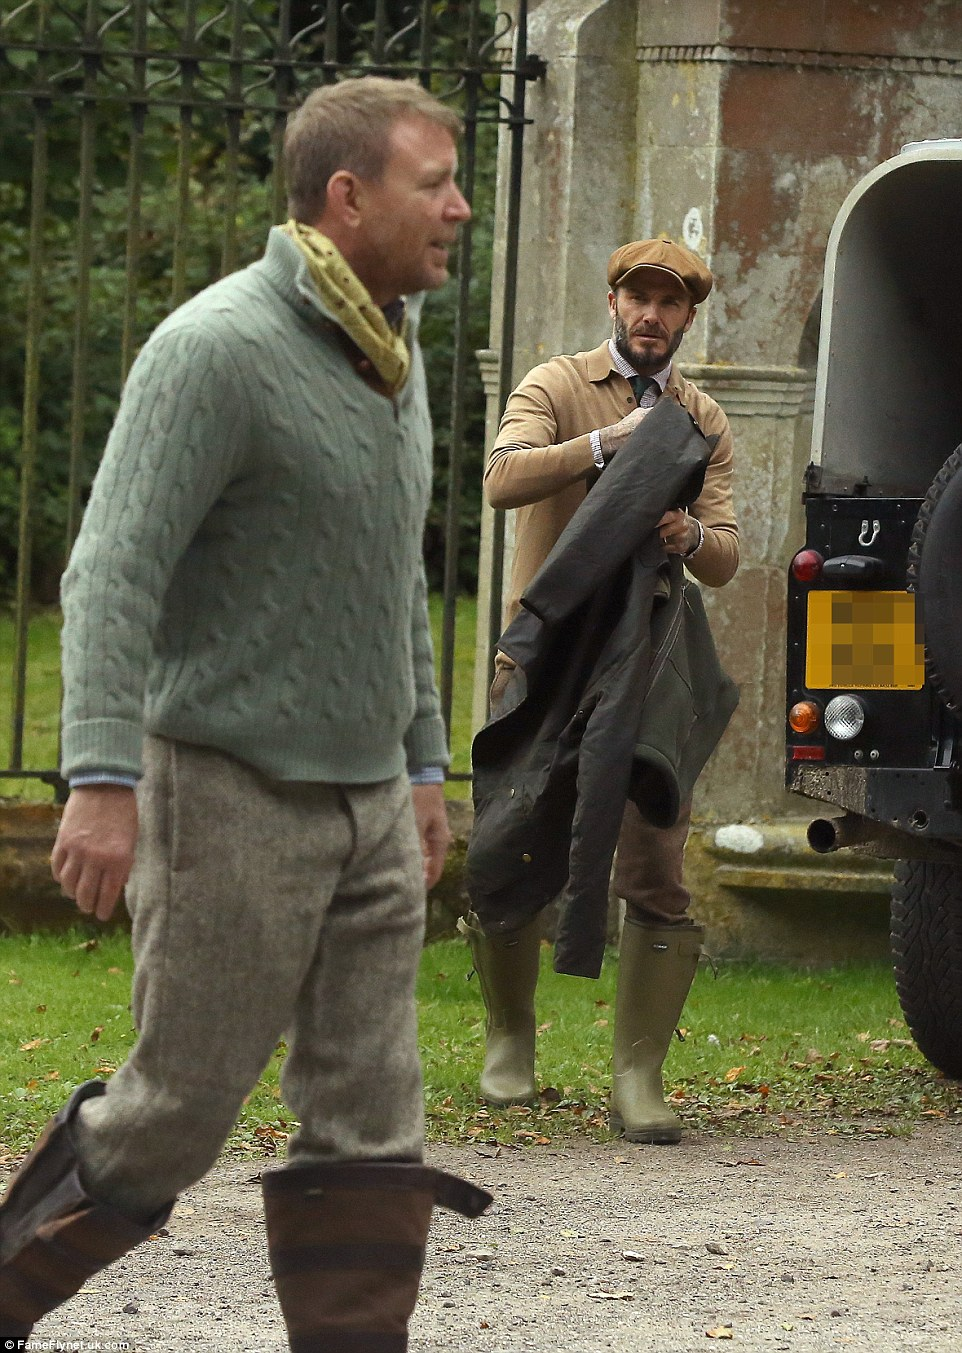 Passion for fashion: Wearing a long-sleeved taupe polo shirt over a crisp gingham shirt with an army green tie, the former England captian opted for perfectly-tailored trousers that fell seamlessly into his wellies